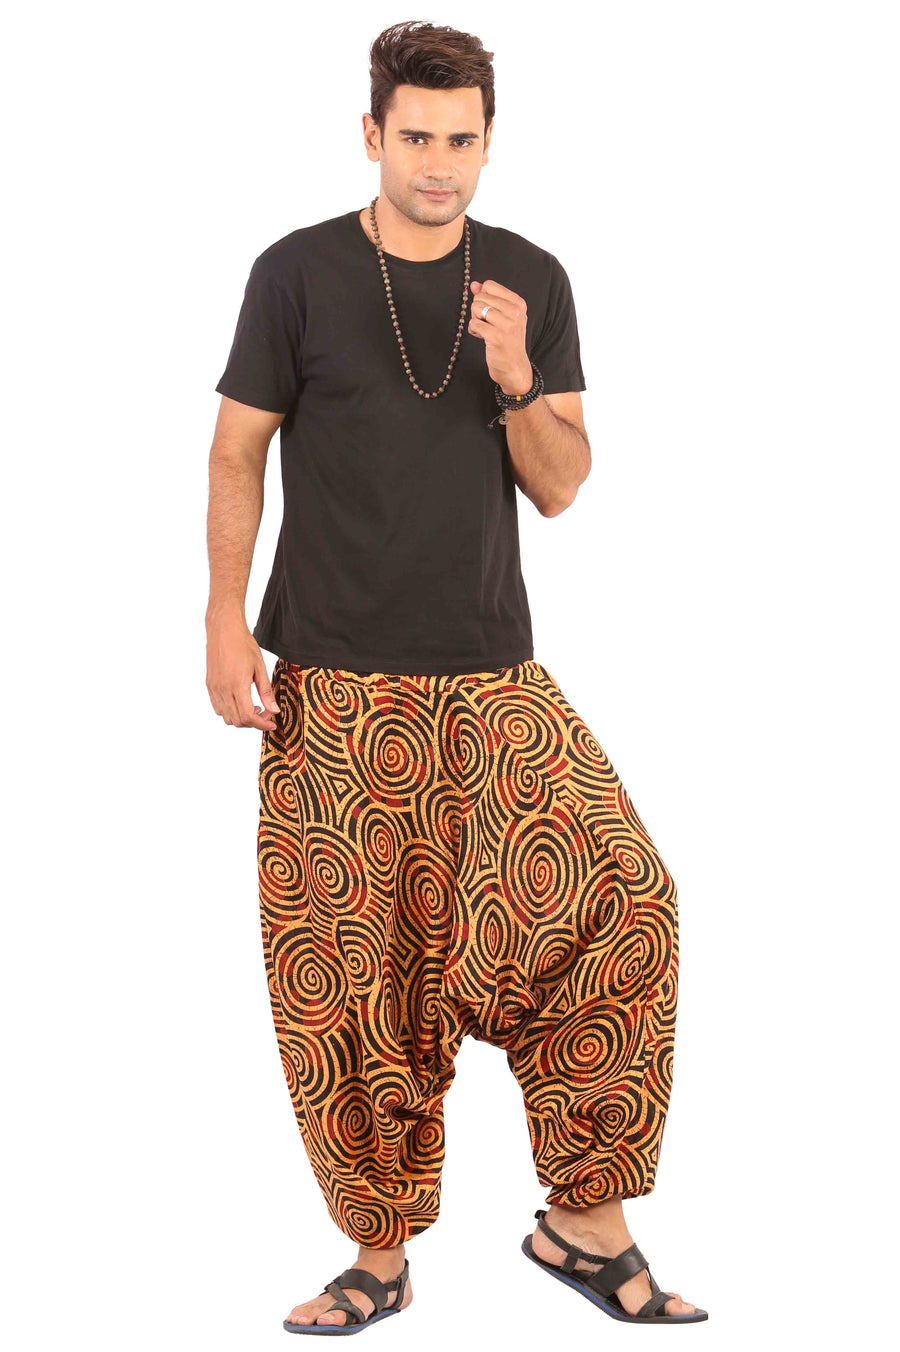 Harem Pants, Yellow Harem Pants, Wide Leg Pants, Show me Hippie Pants, Show me some Mens Harem Pants, Show me some Womens Harem Pants, What is a harem pant, Show me some baggy pants, I want to buy harem pants, cool harem pants, Wide leg harem Pants, Cheap Harem Pants, Show me best harem pants, Highly rated Harem Pants